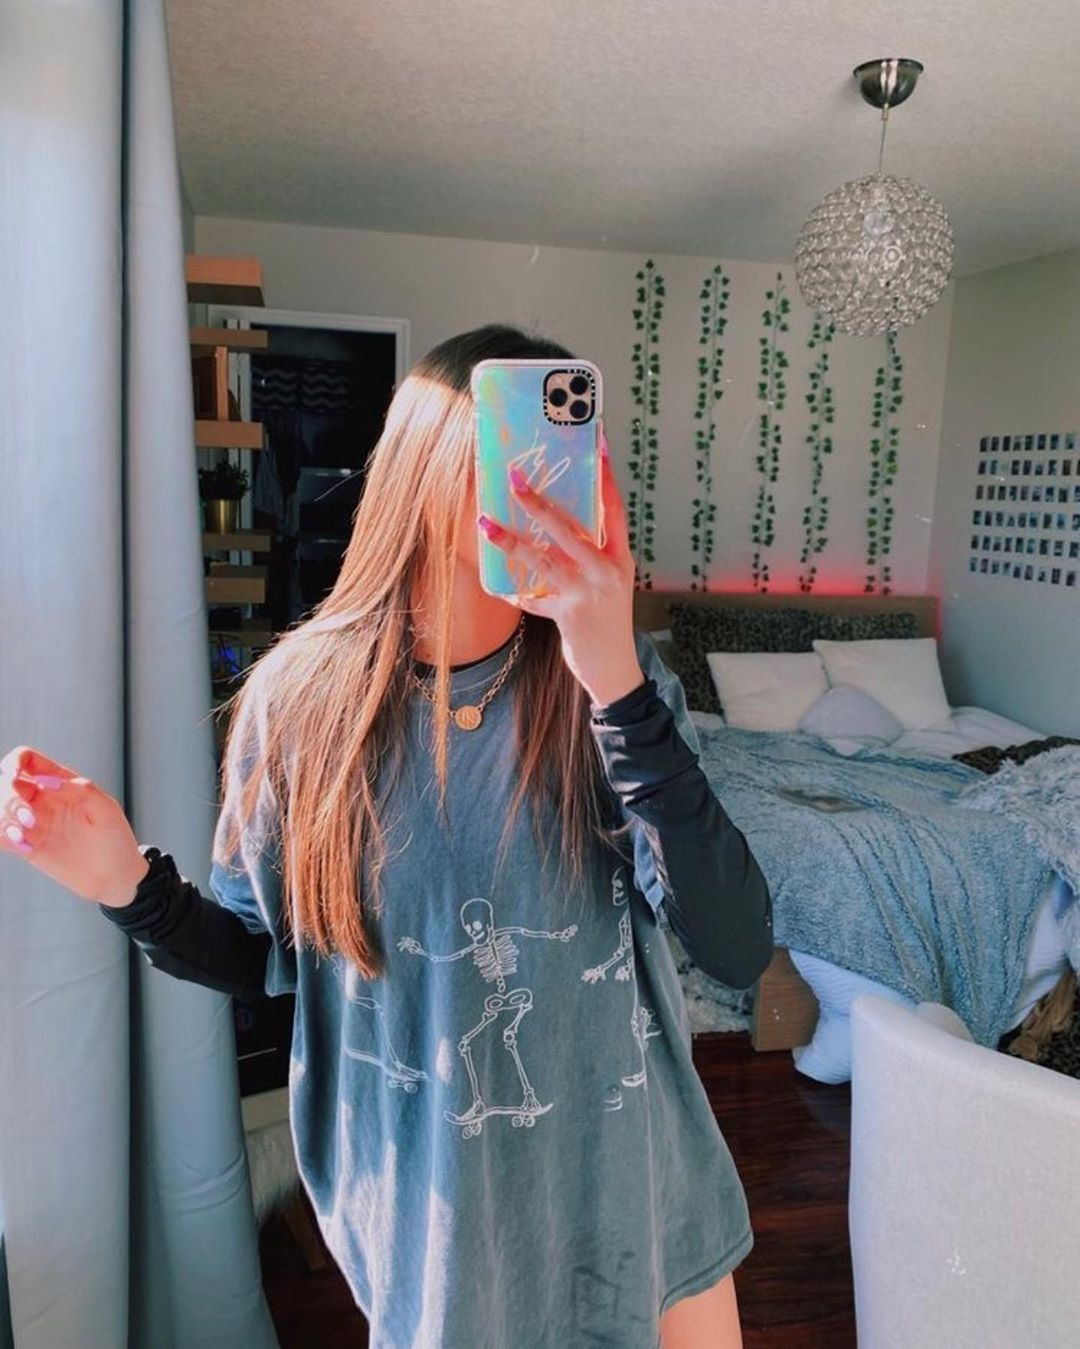 """���� ~39.1�� on Instagram: """"CUTE OUTFITS INSPO��️��� q:whats your favorite year in school?? —fc; 31.3k��️���️� - - #vscogirl #vscogirls #vscogirlvibes #puravida…"""""""